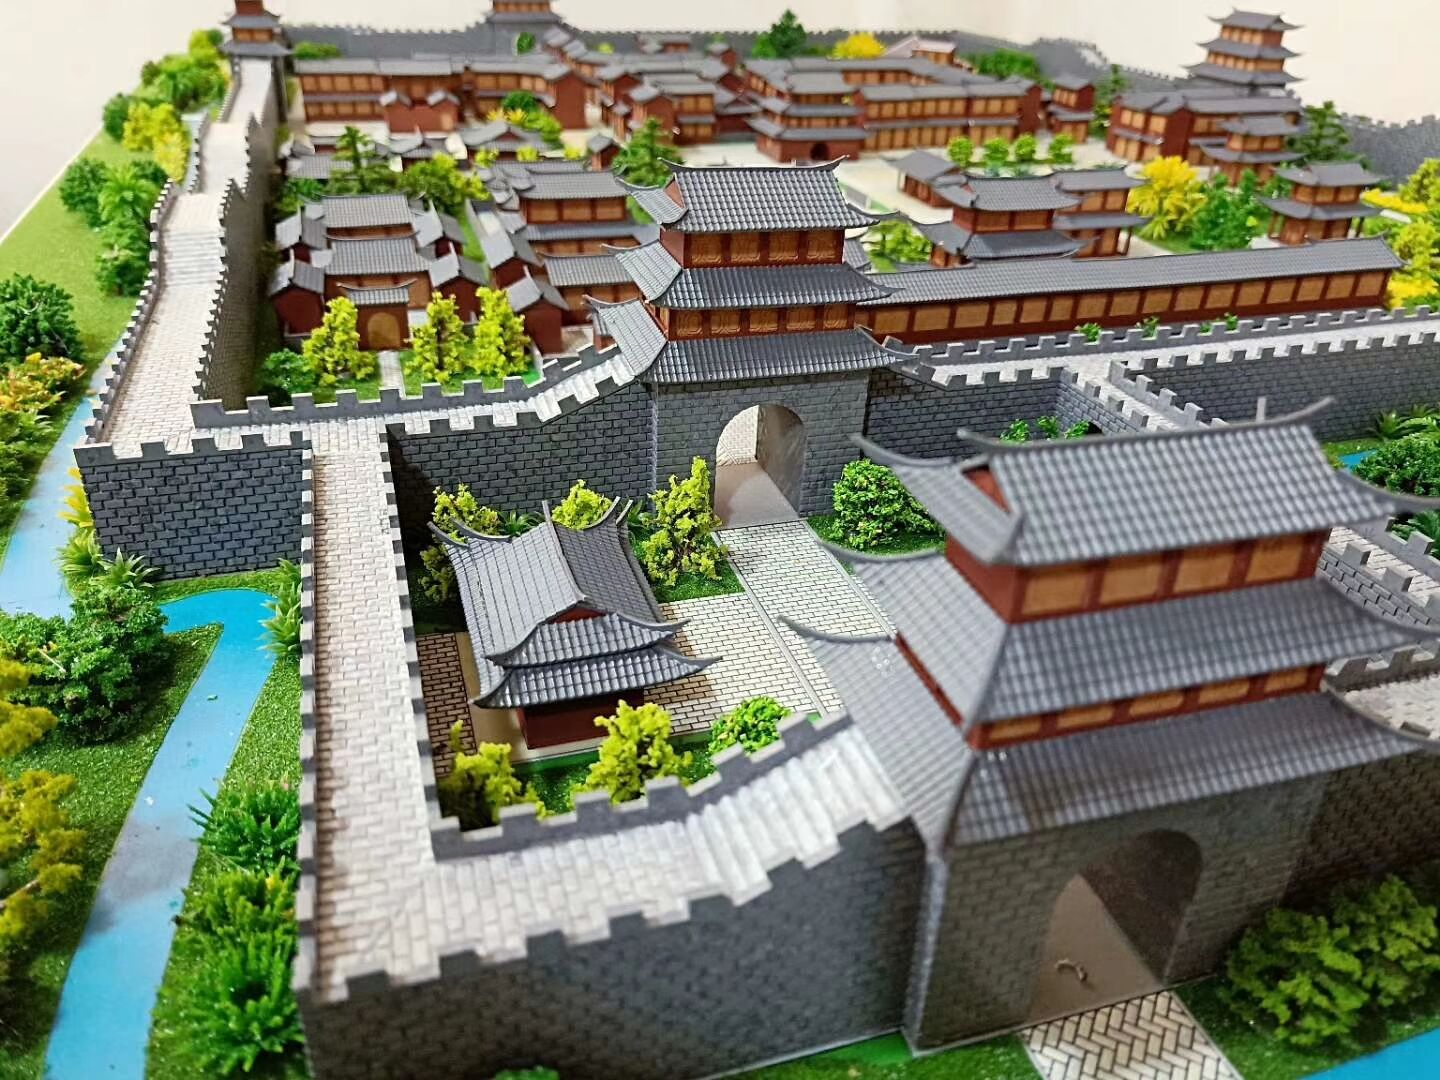 Ancient architecture topography sand table model scene mechanical industry intelligent sand table model customization